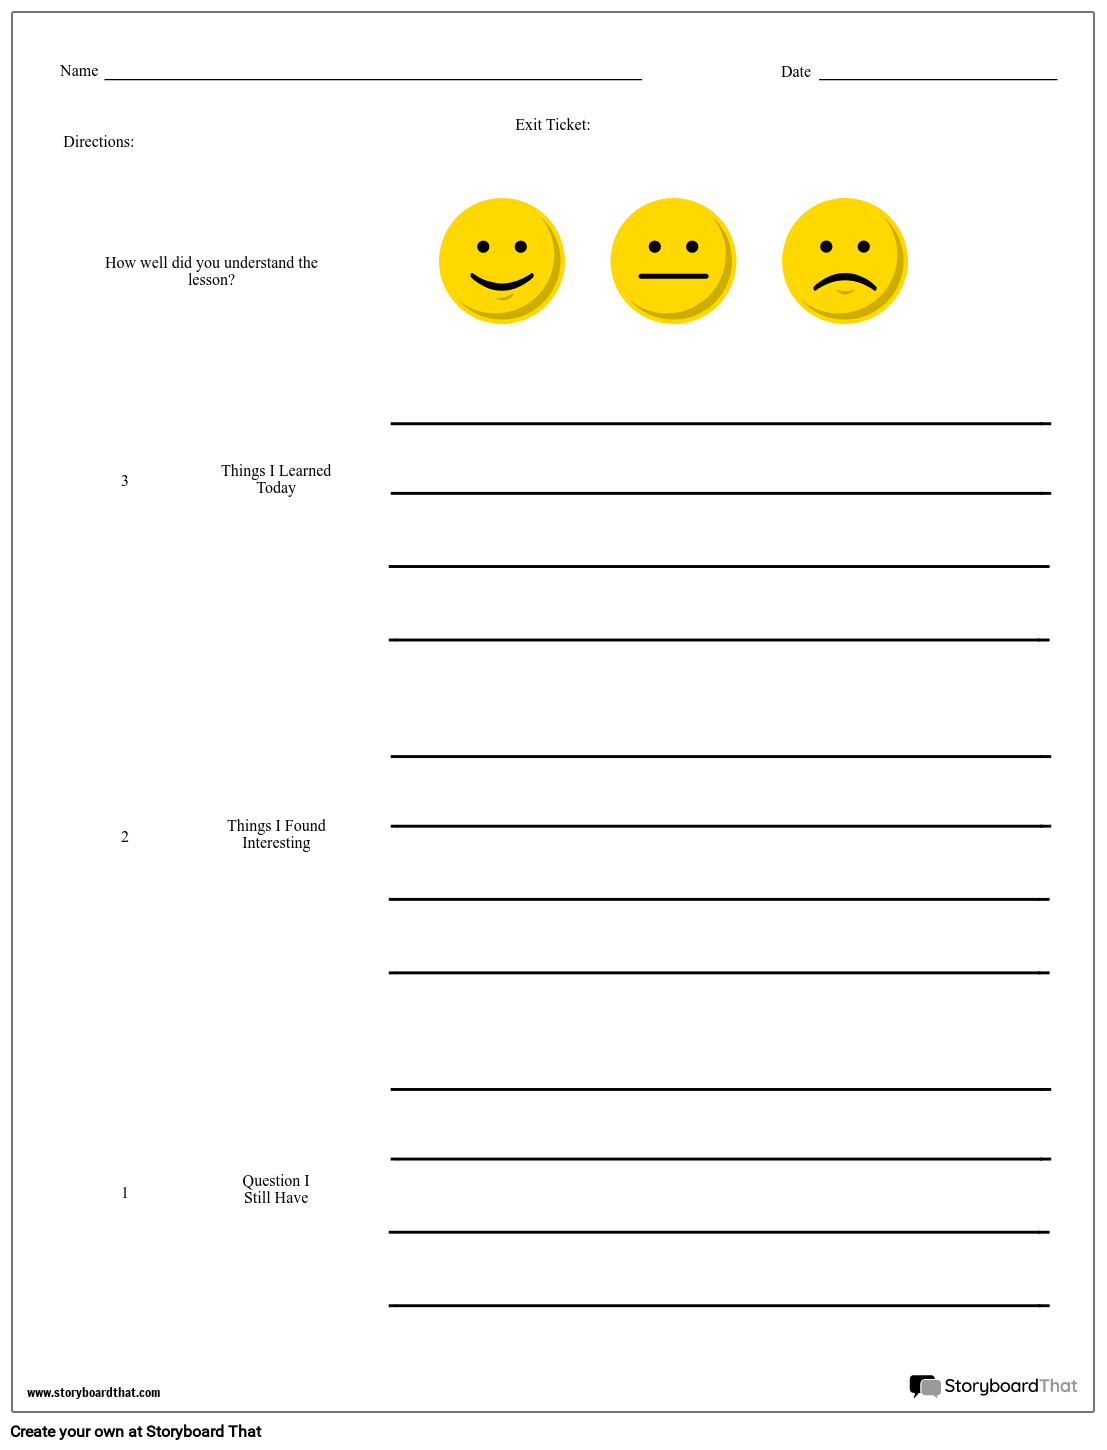 image relating to Printable Exit Tickets identify Make an Exit Ticket Exit Ticket Template and Strategies